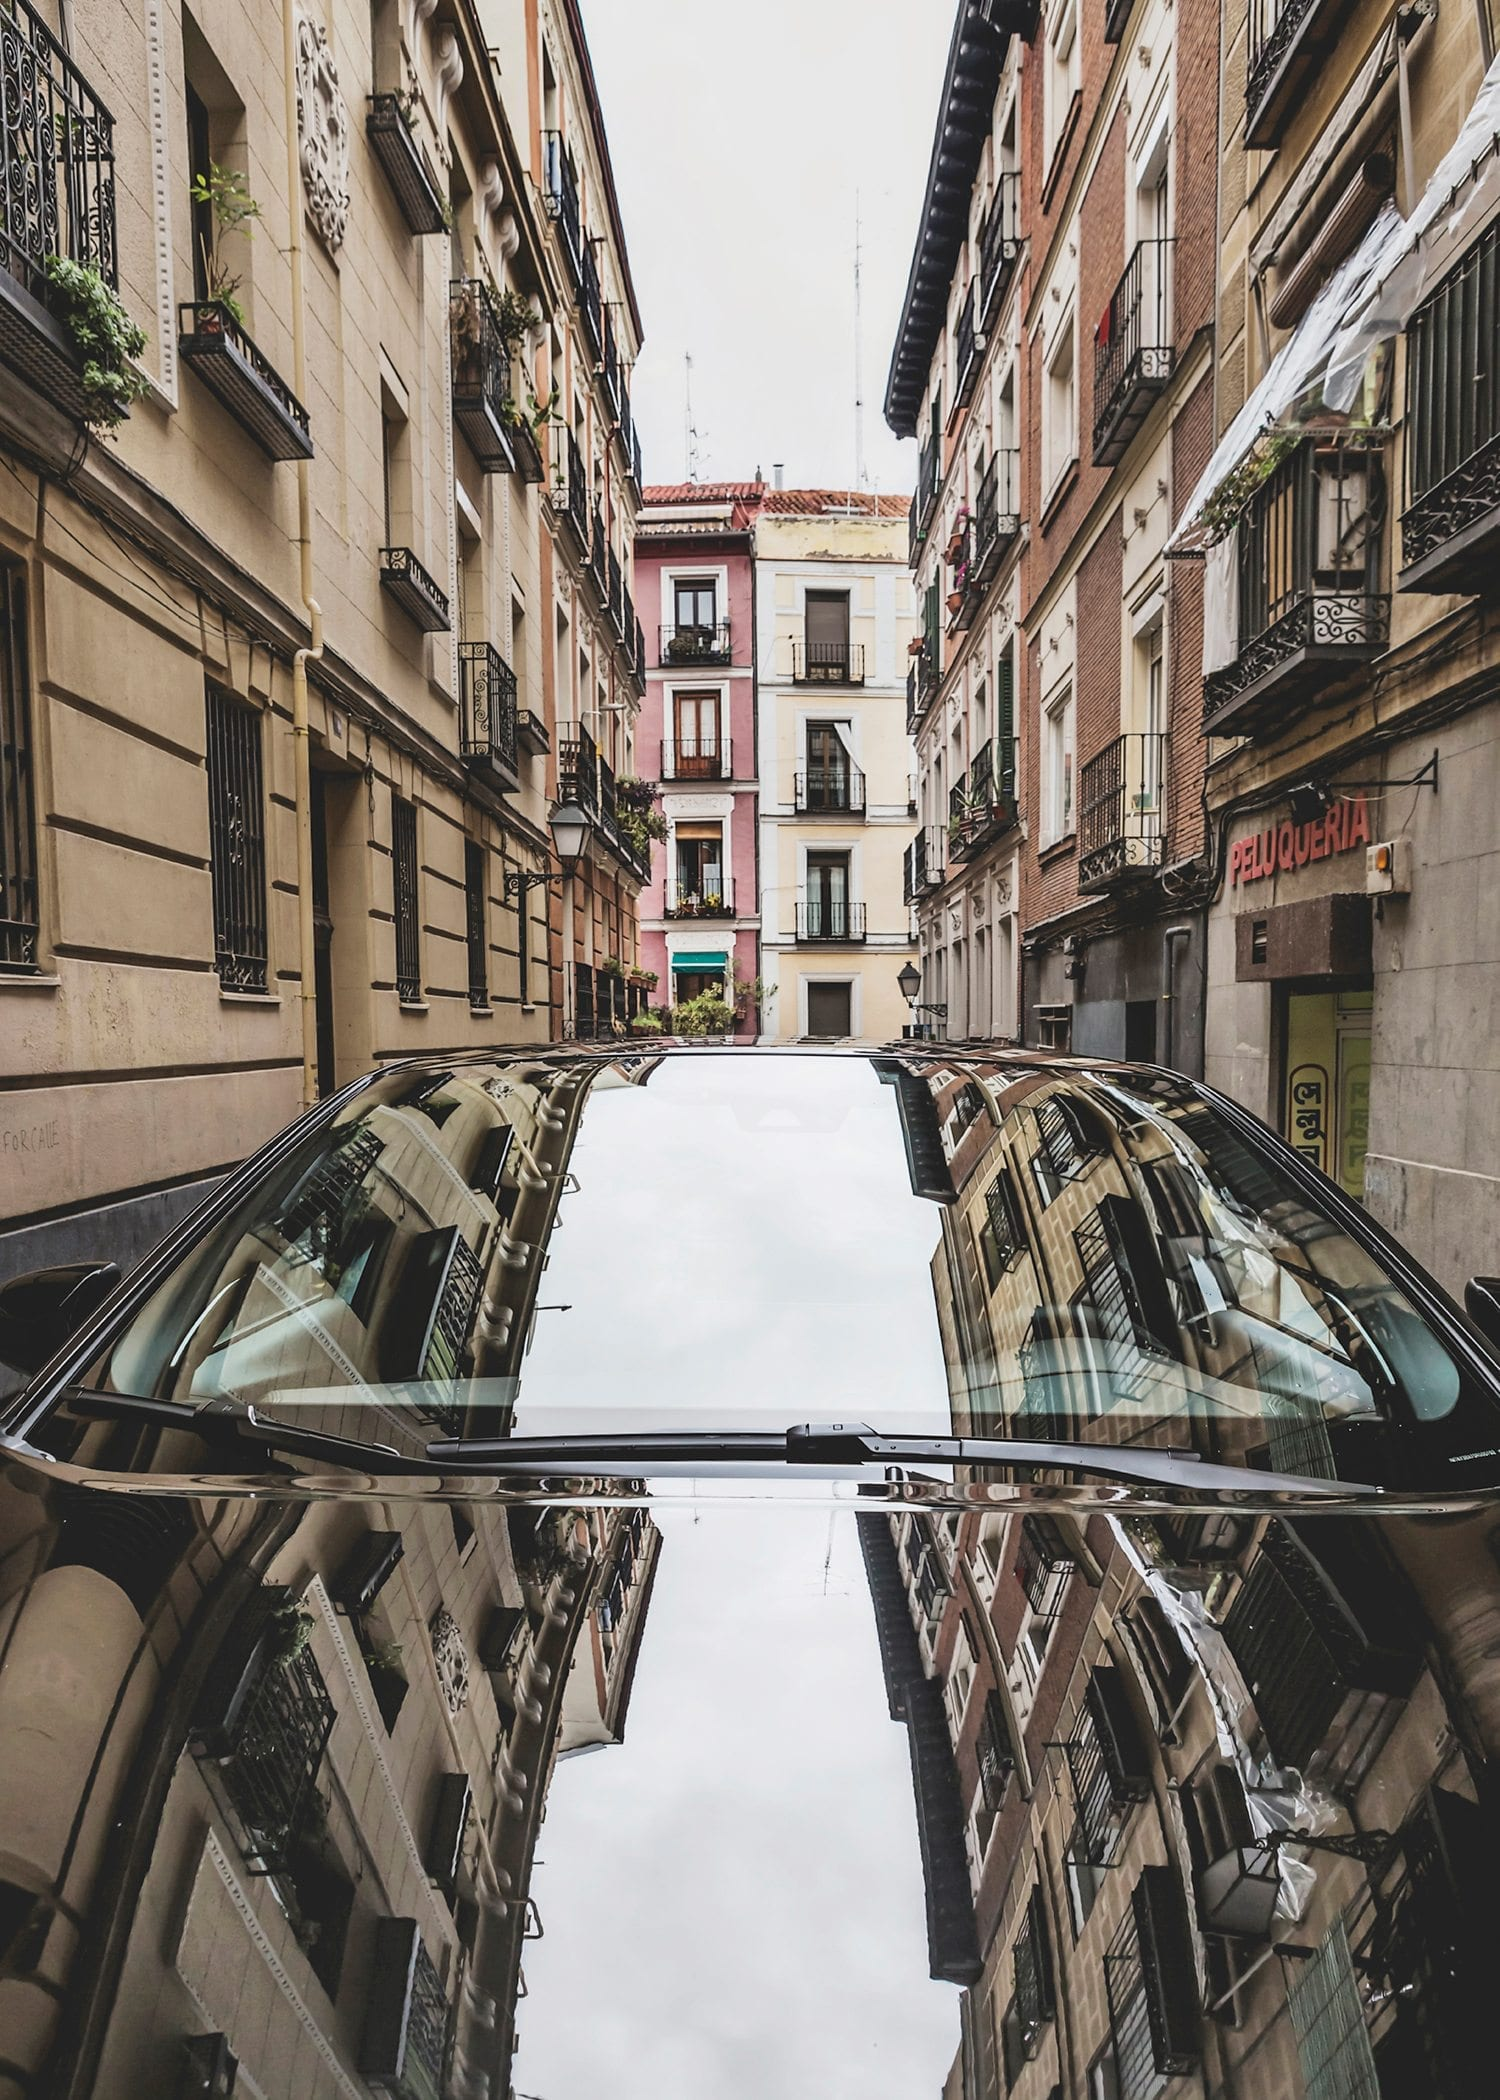 Urban reflections Madrid car Toyota C-HR Toyota Motor Europe hybrid car photography picturelyspoken SeeMyCity Marianne Hope